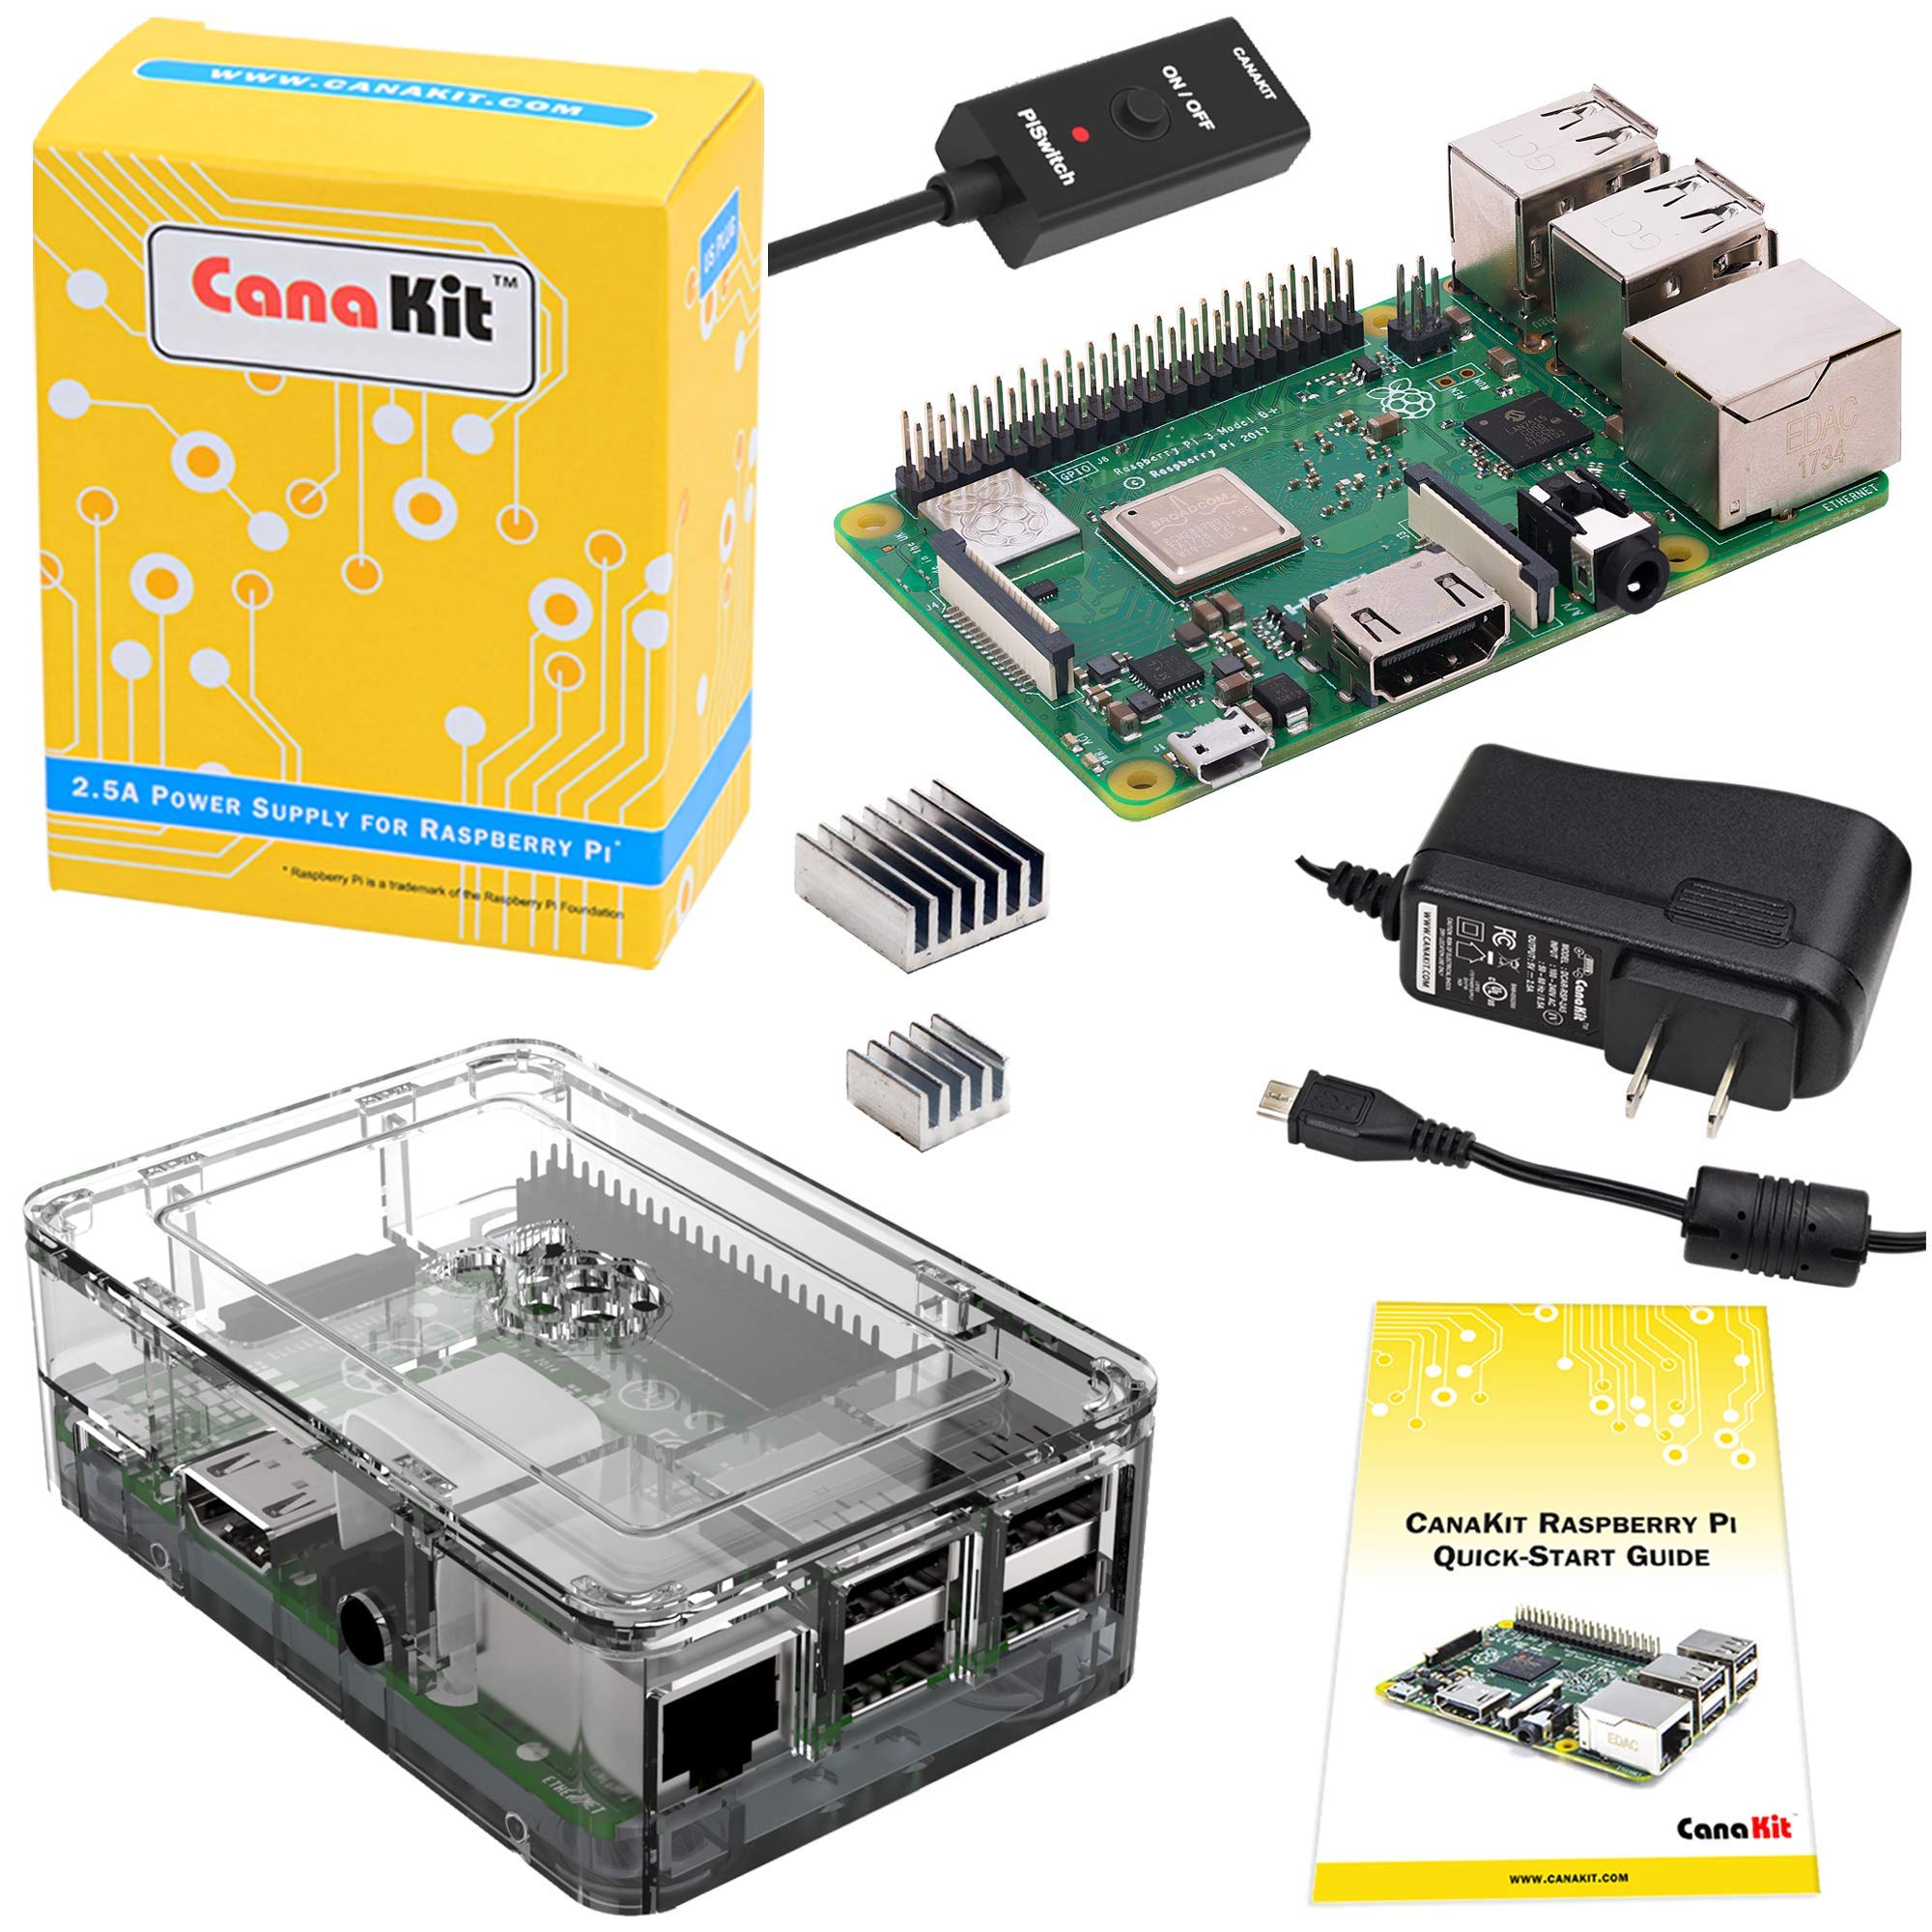 CanaKit Raspberry Pi 3 B+ (B Plus) with Premium Clear Case and 2.5A Power Supply by CanaKit